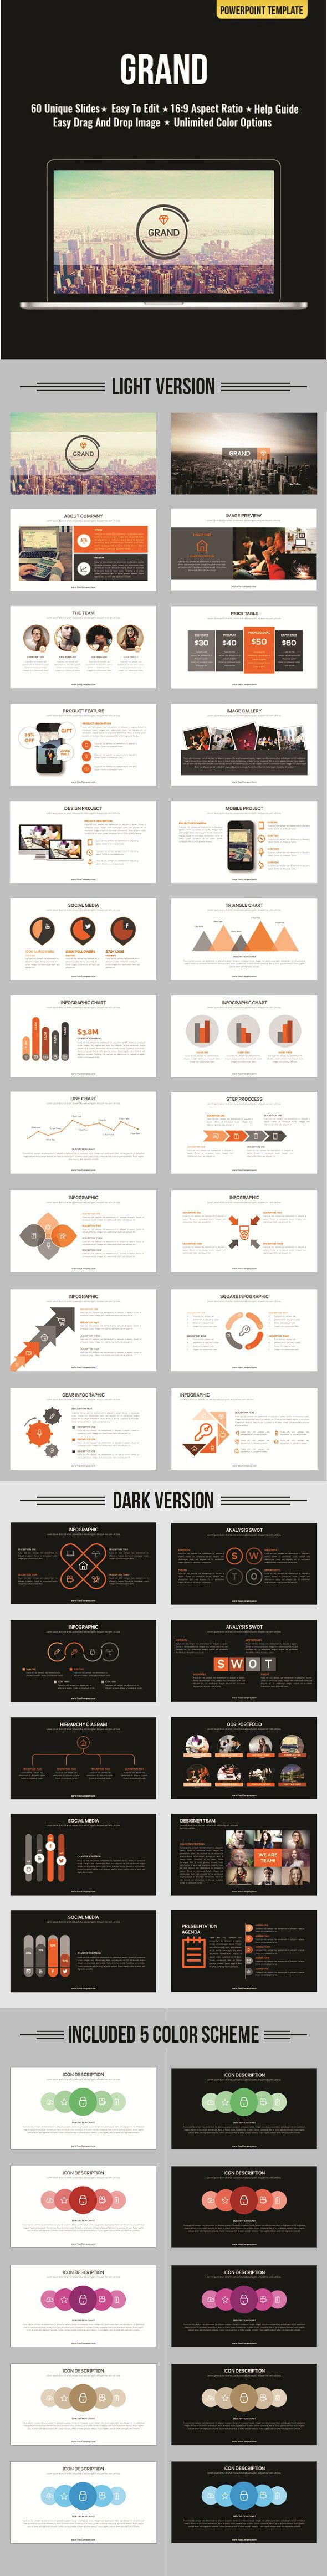 Grand PowerPoint Template #powerpoint #powerpointtemplate #presentation…